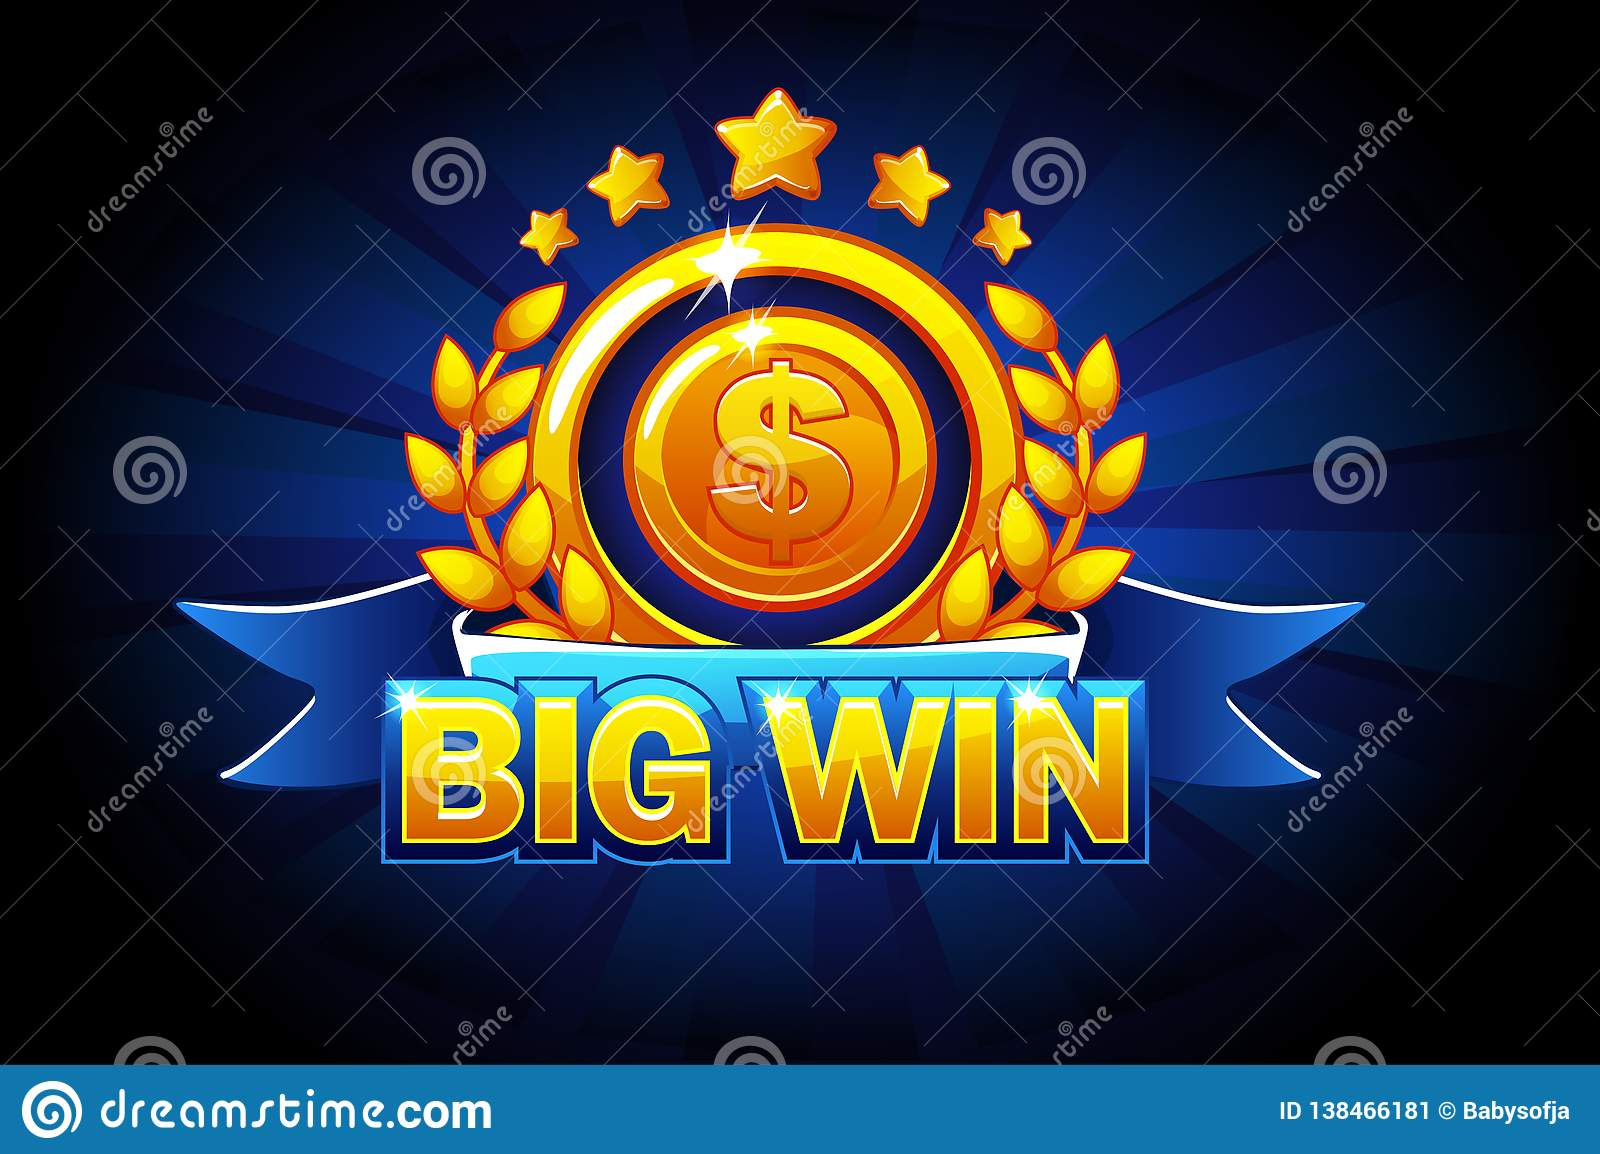 Big Win banner with blue ribbon and text. Vector illustration for casino, slots, roulette and game UI